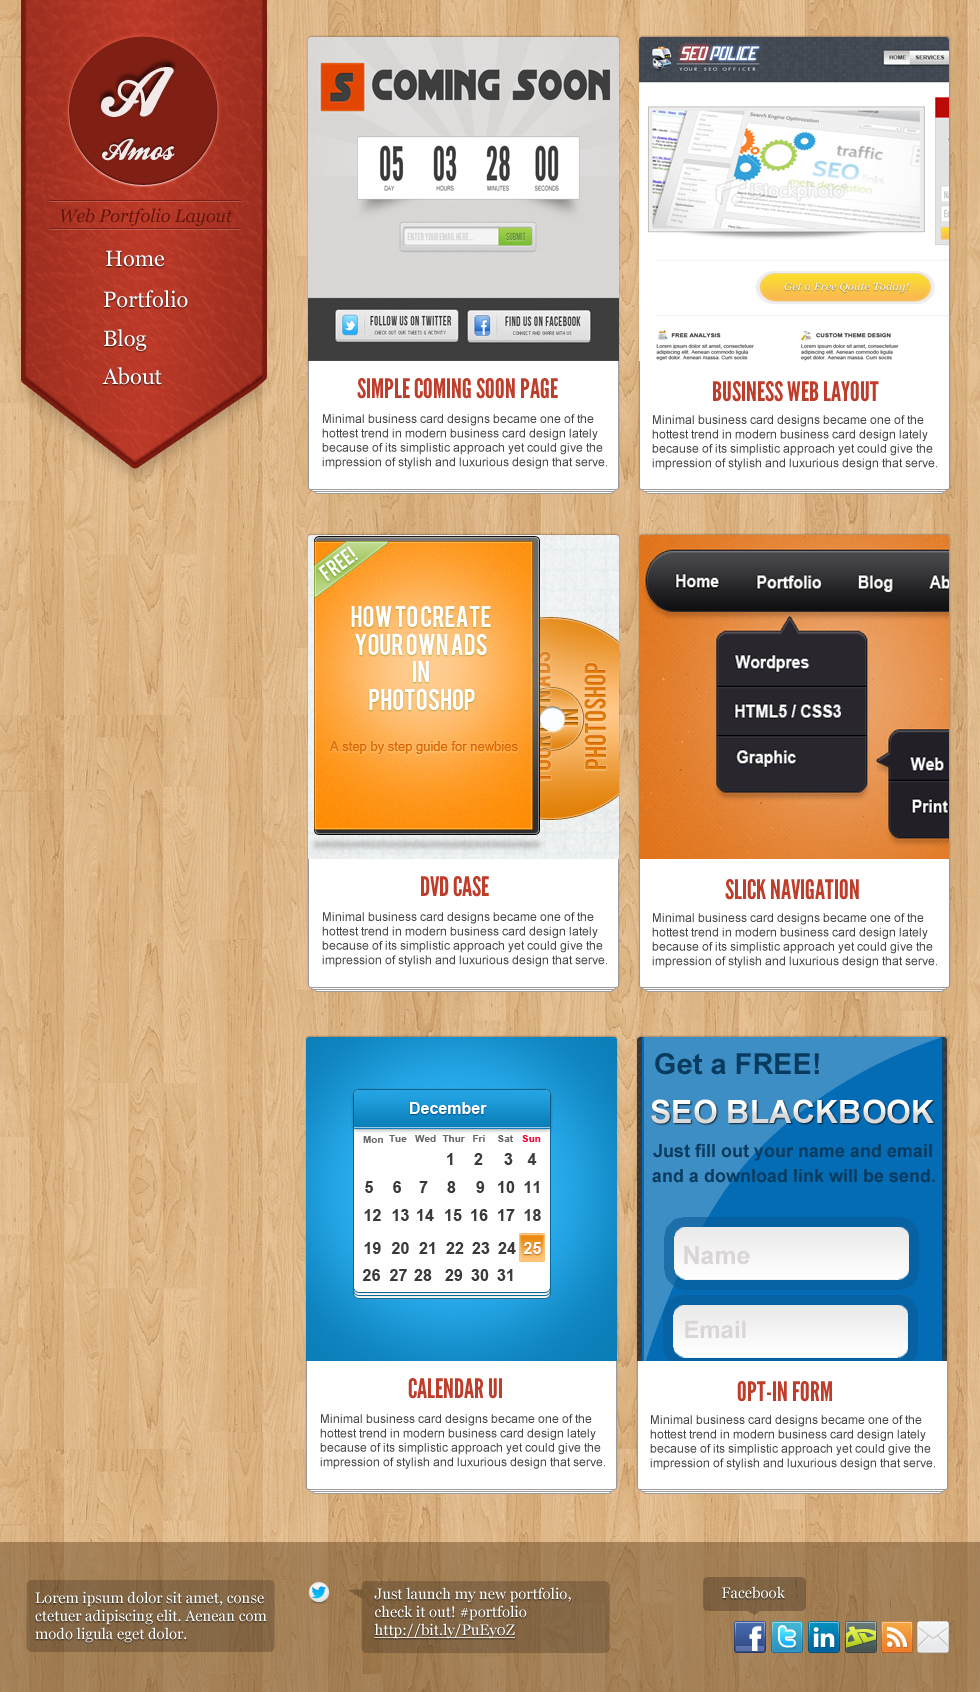 how to create an awesome portfolio layout in photoshop